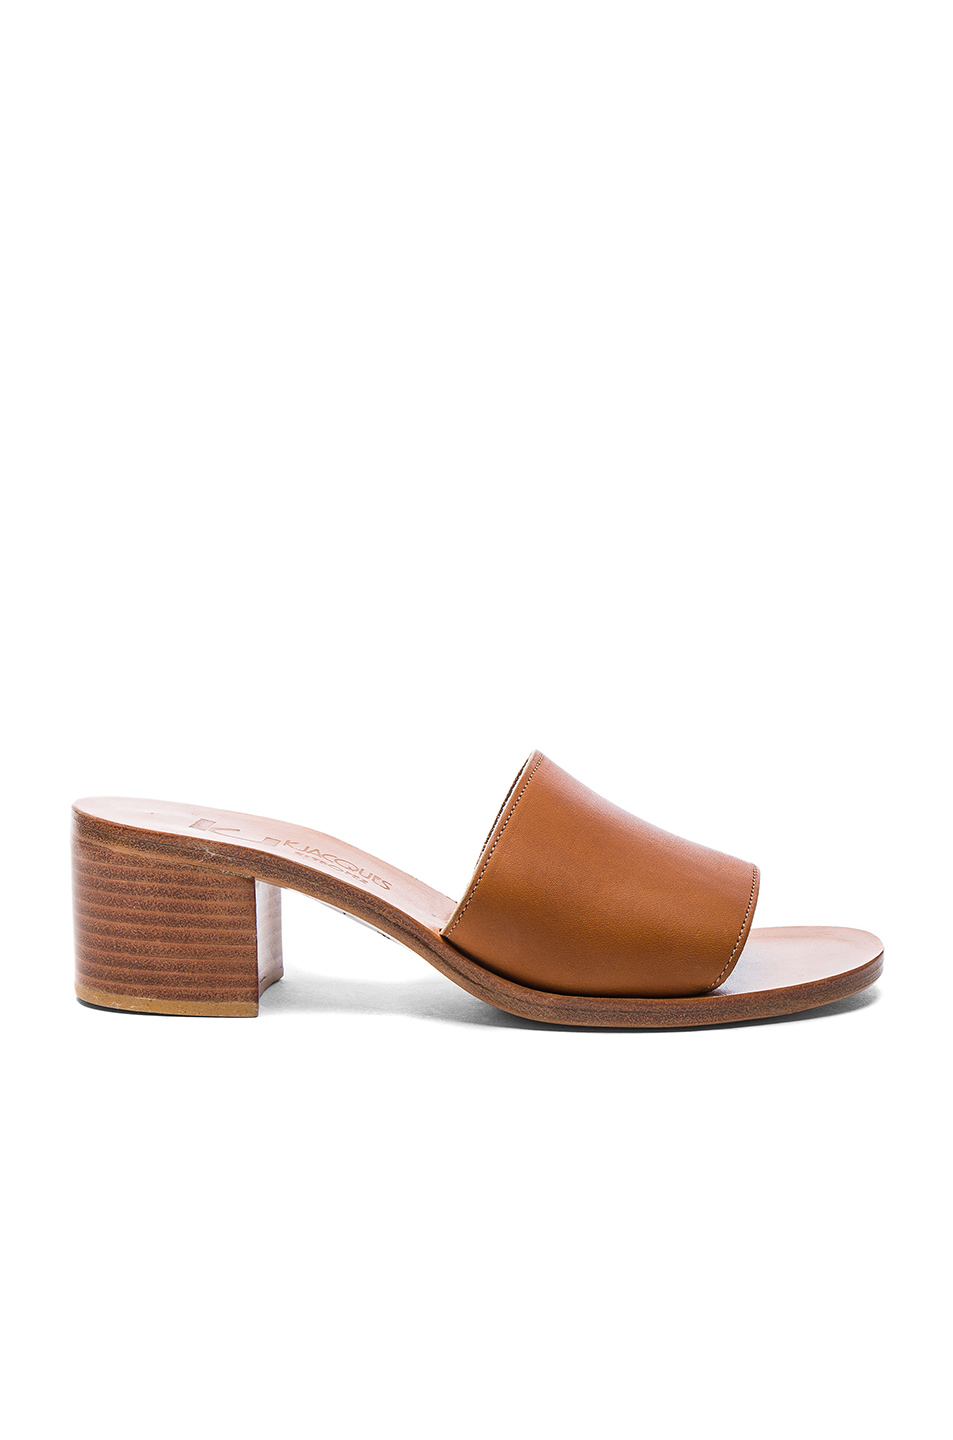 K Jacques Leather Caprika Sandals in Neutrals,Brown